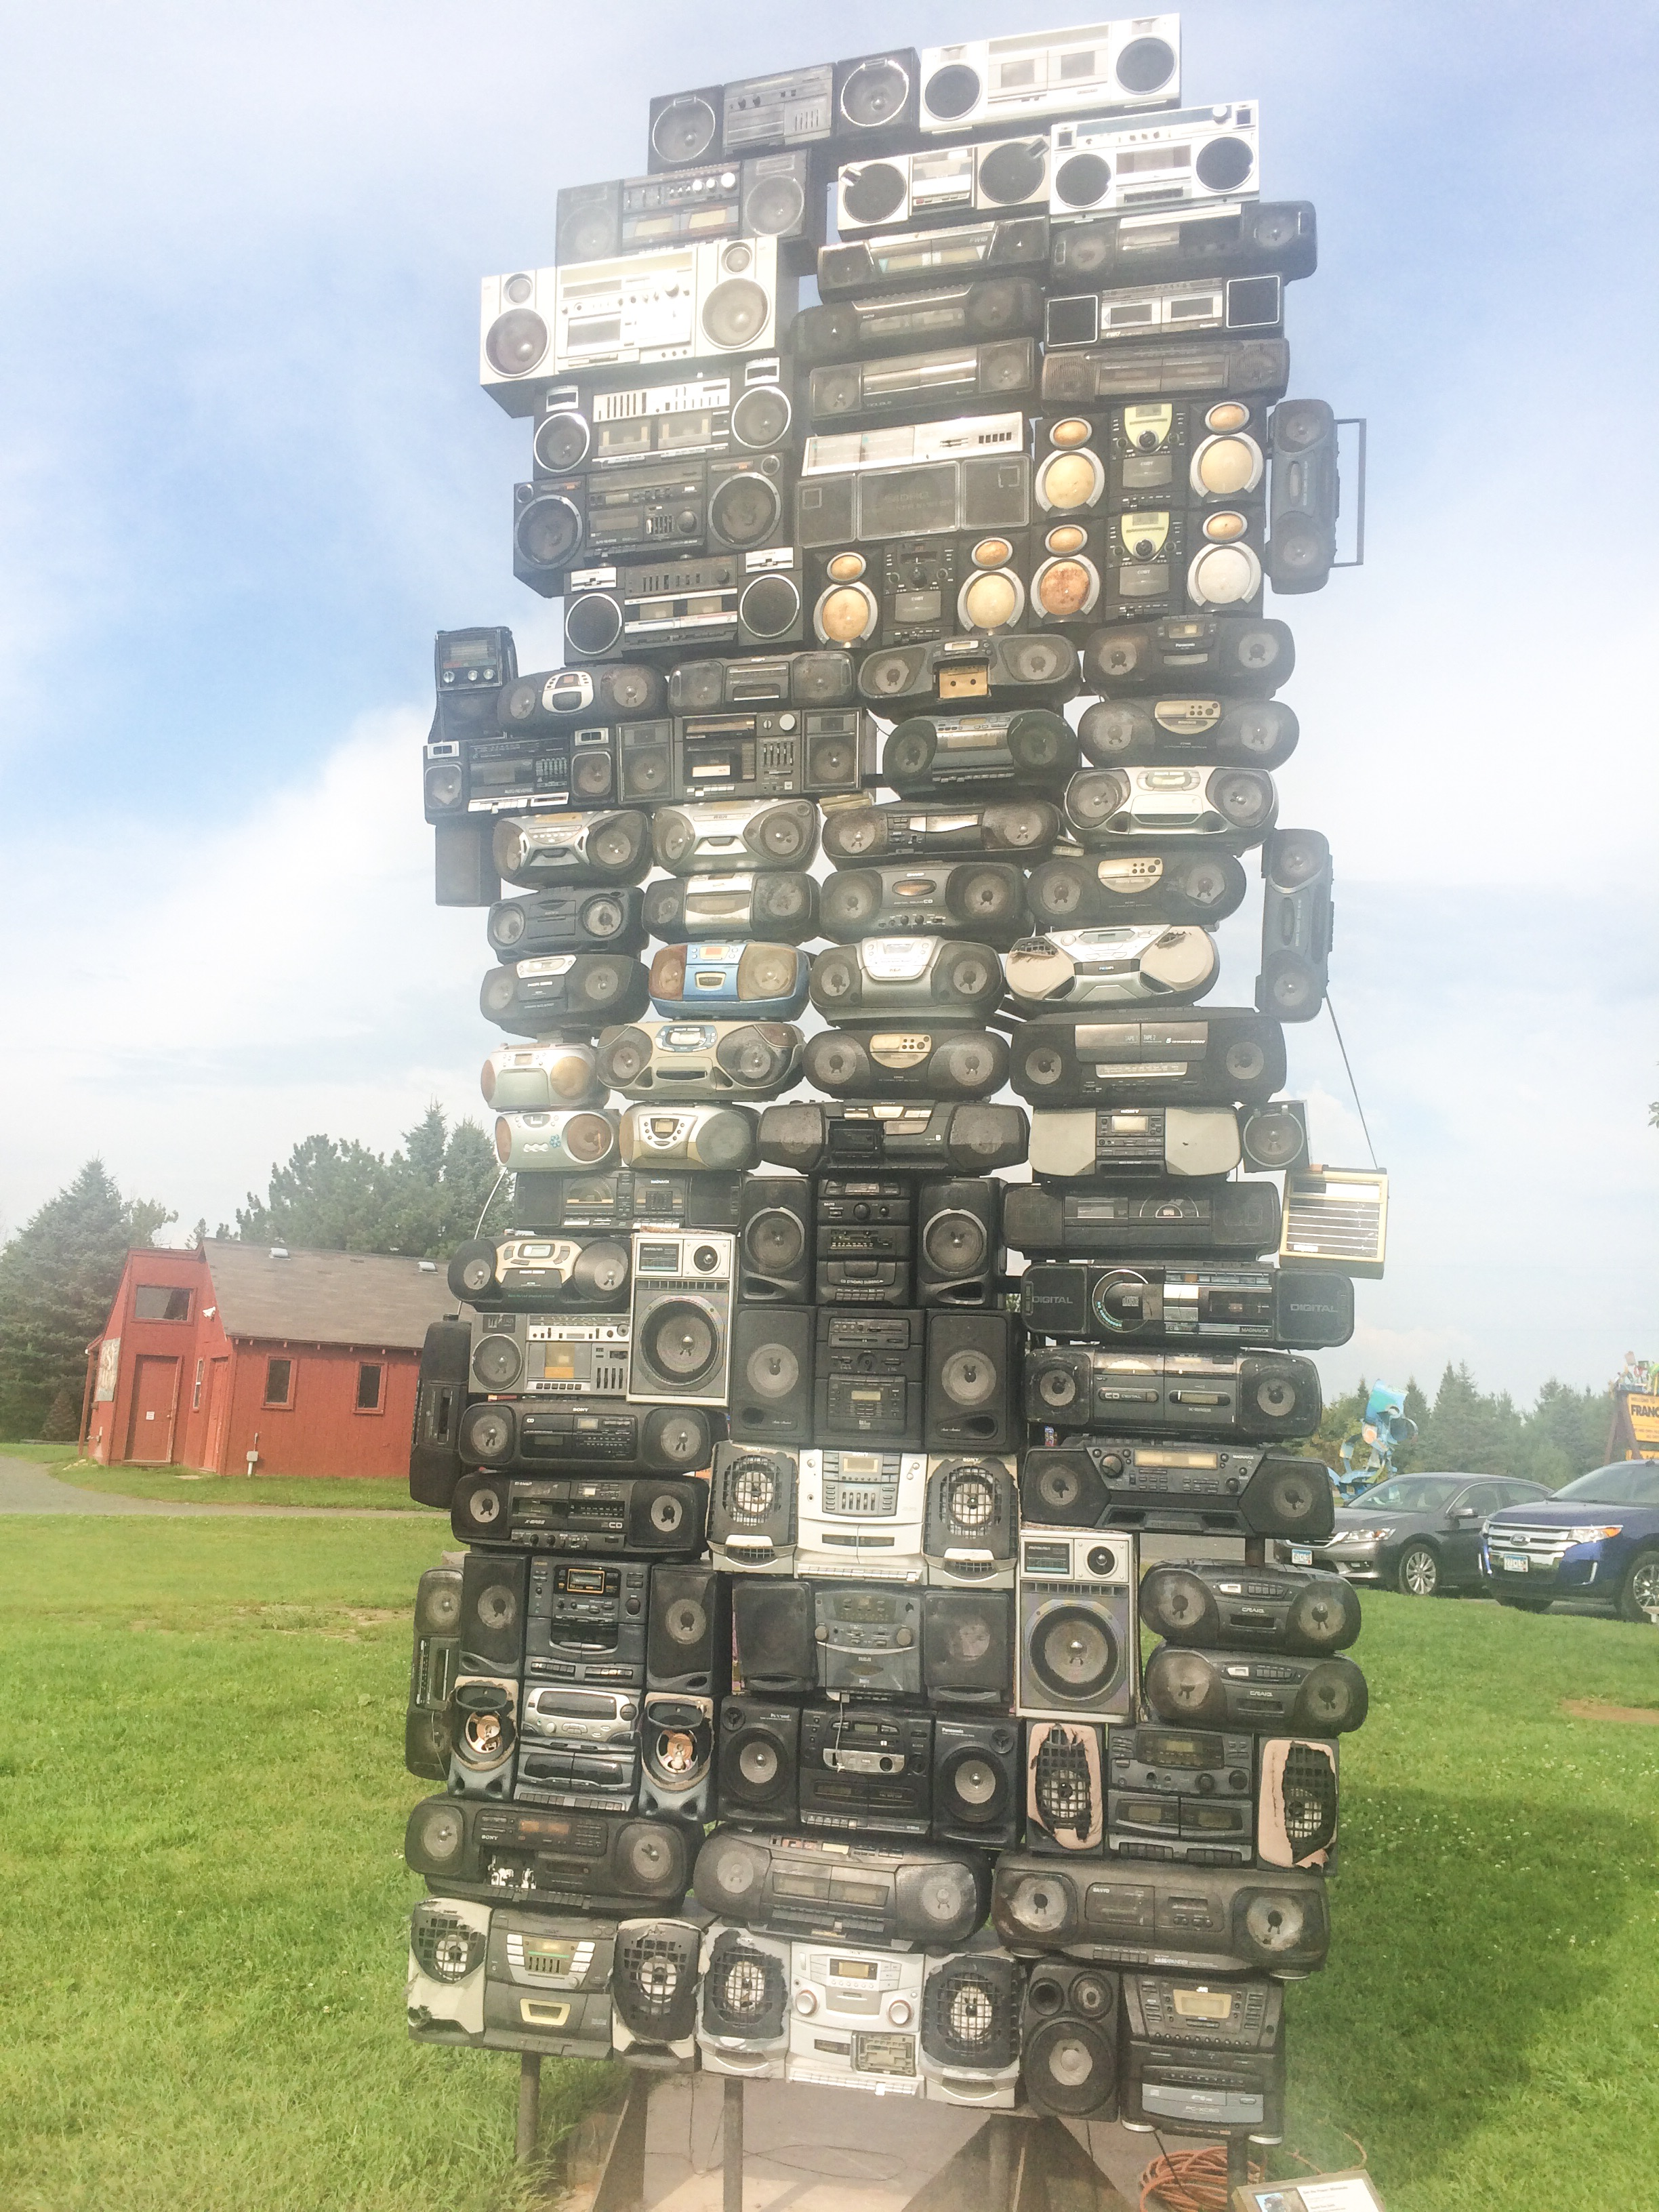 """Love this clever use of our old """"boom boxes!"""" All of our junk transformed into this interesting masterpiece!"""